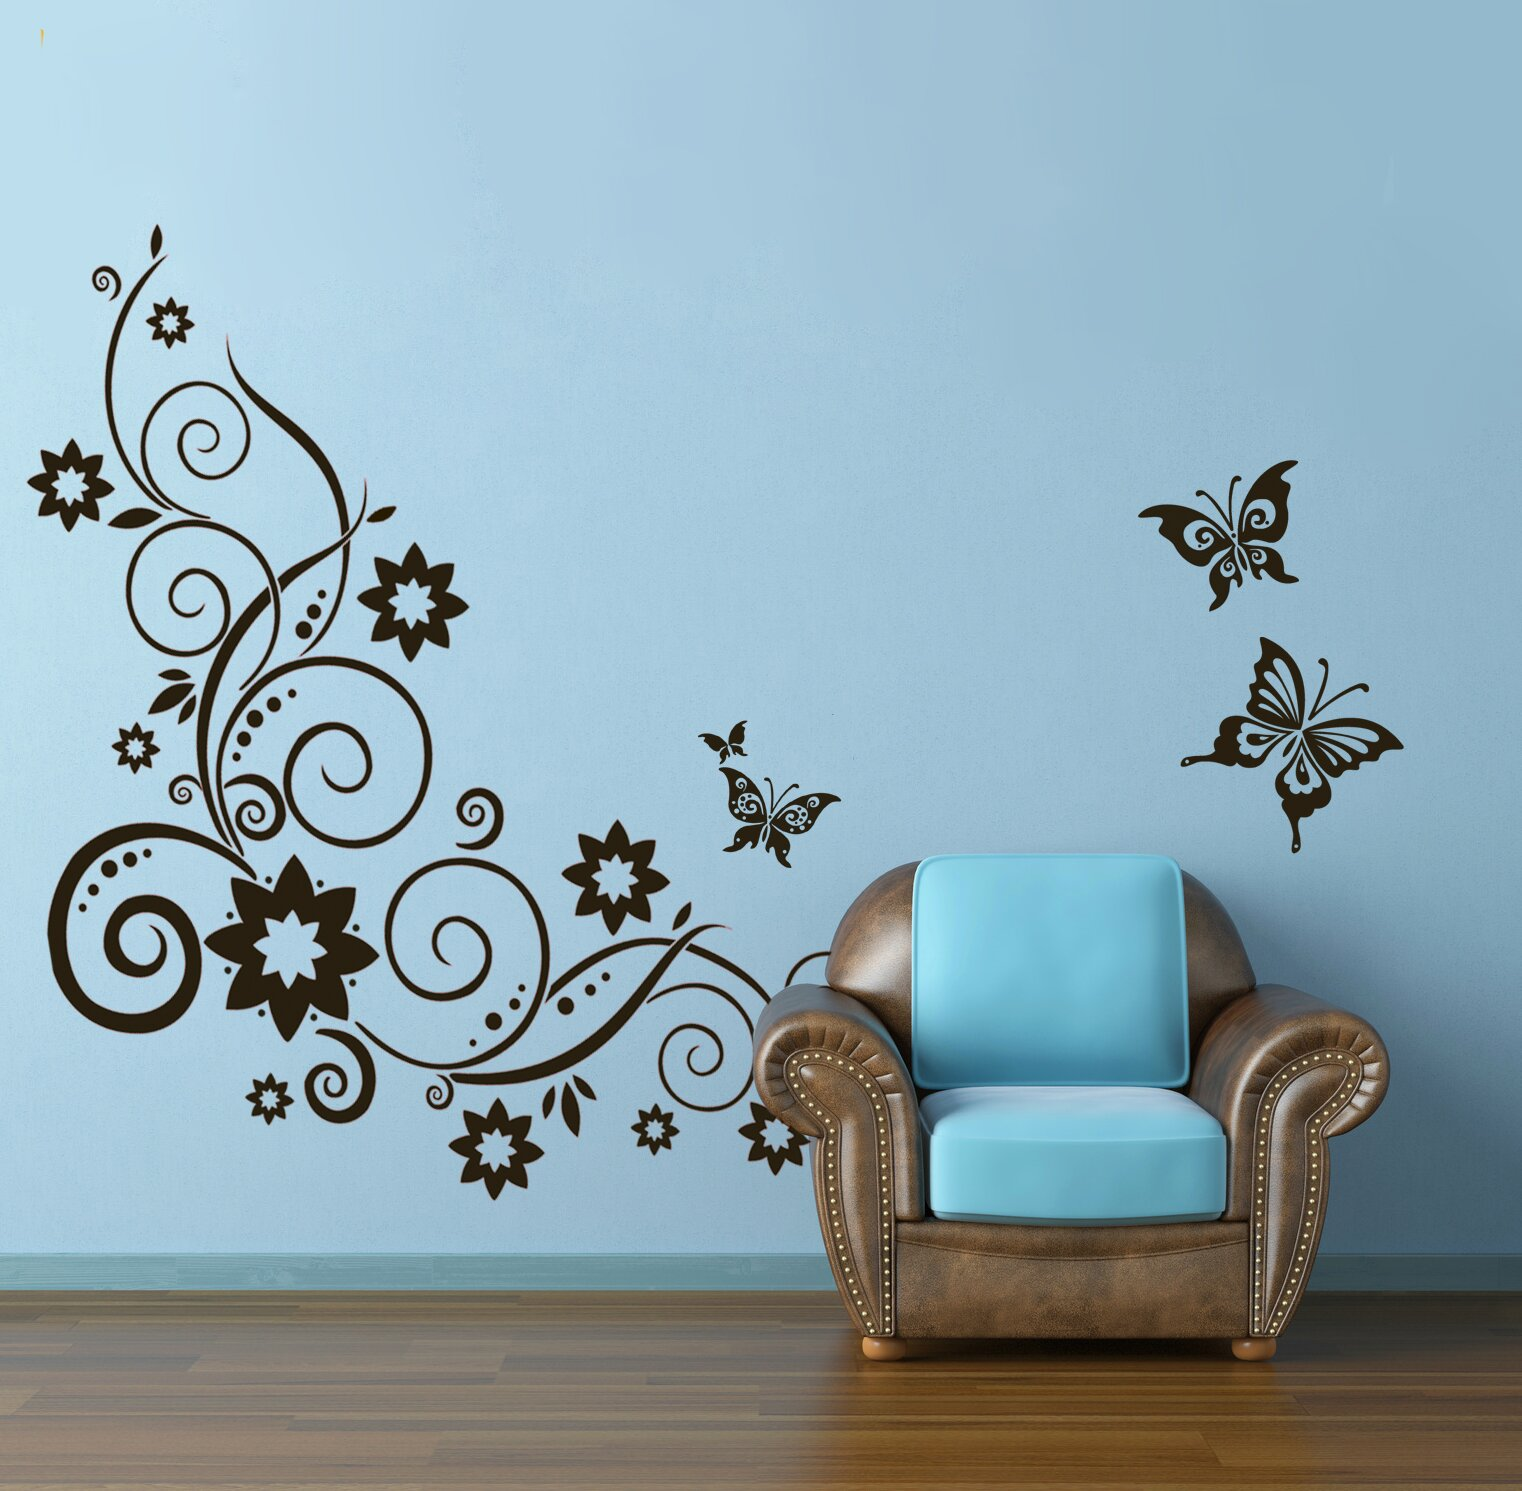 Room Decor Wall Stickers The 15 Most Beautiful Wall Stickers Mostbeautifulthings